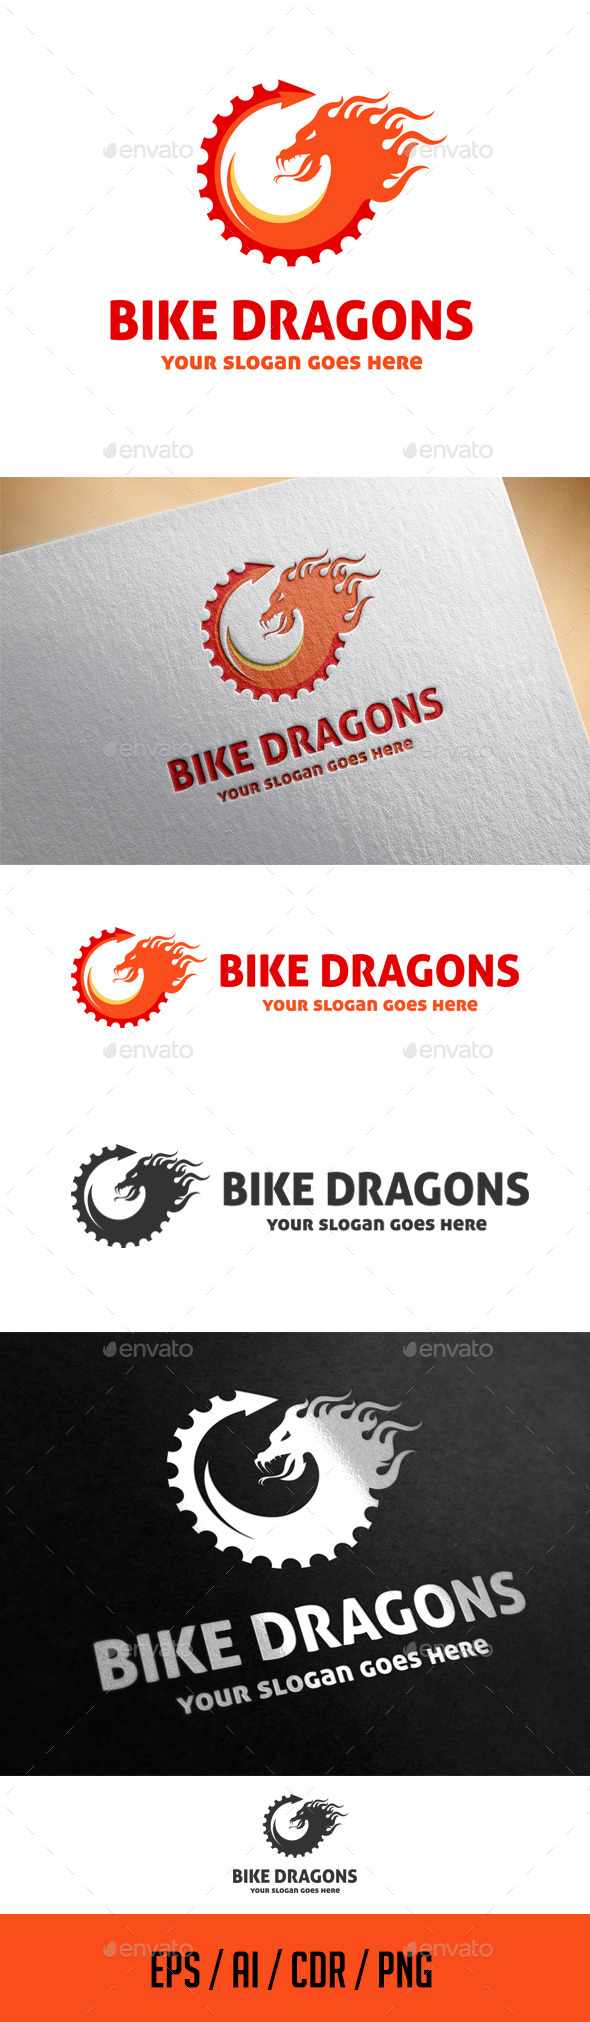 Bike dragons logo template by ragerabbit graphicriver bike dragons logo template abstract logo templates biocorpaavc Images